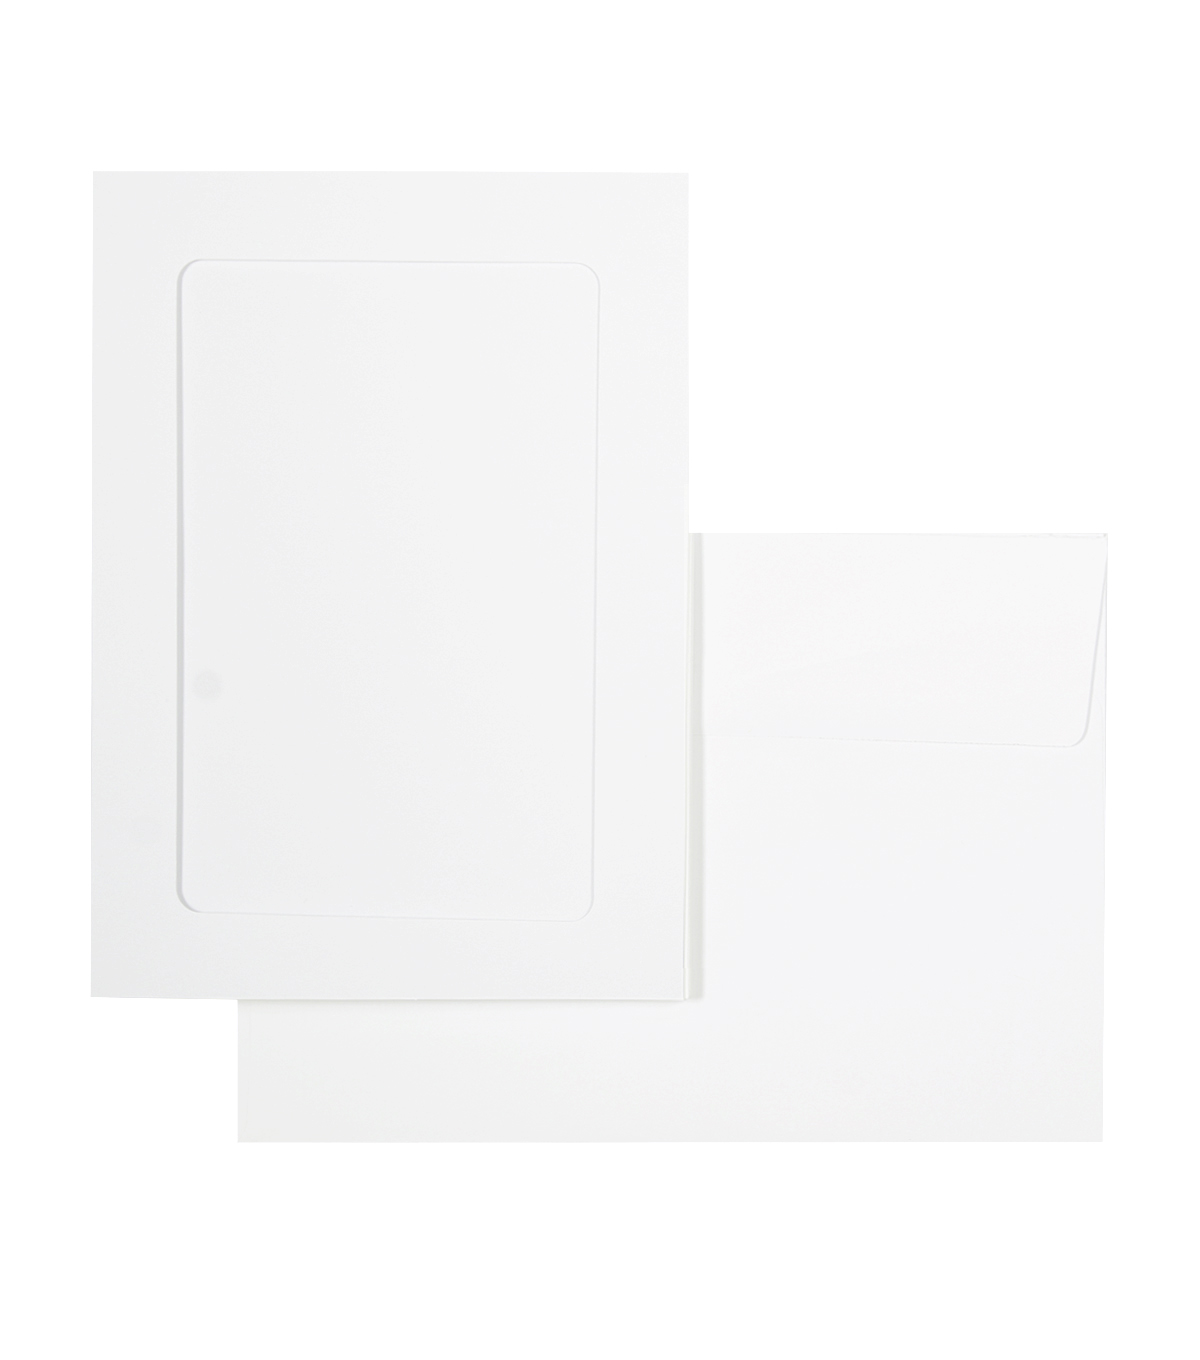 A7 White Cards And Envelopes The Best White 2018